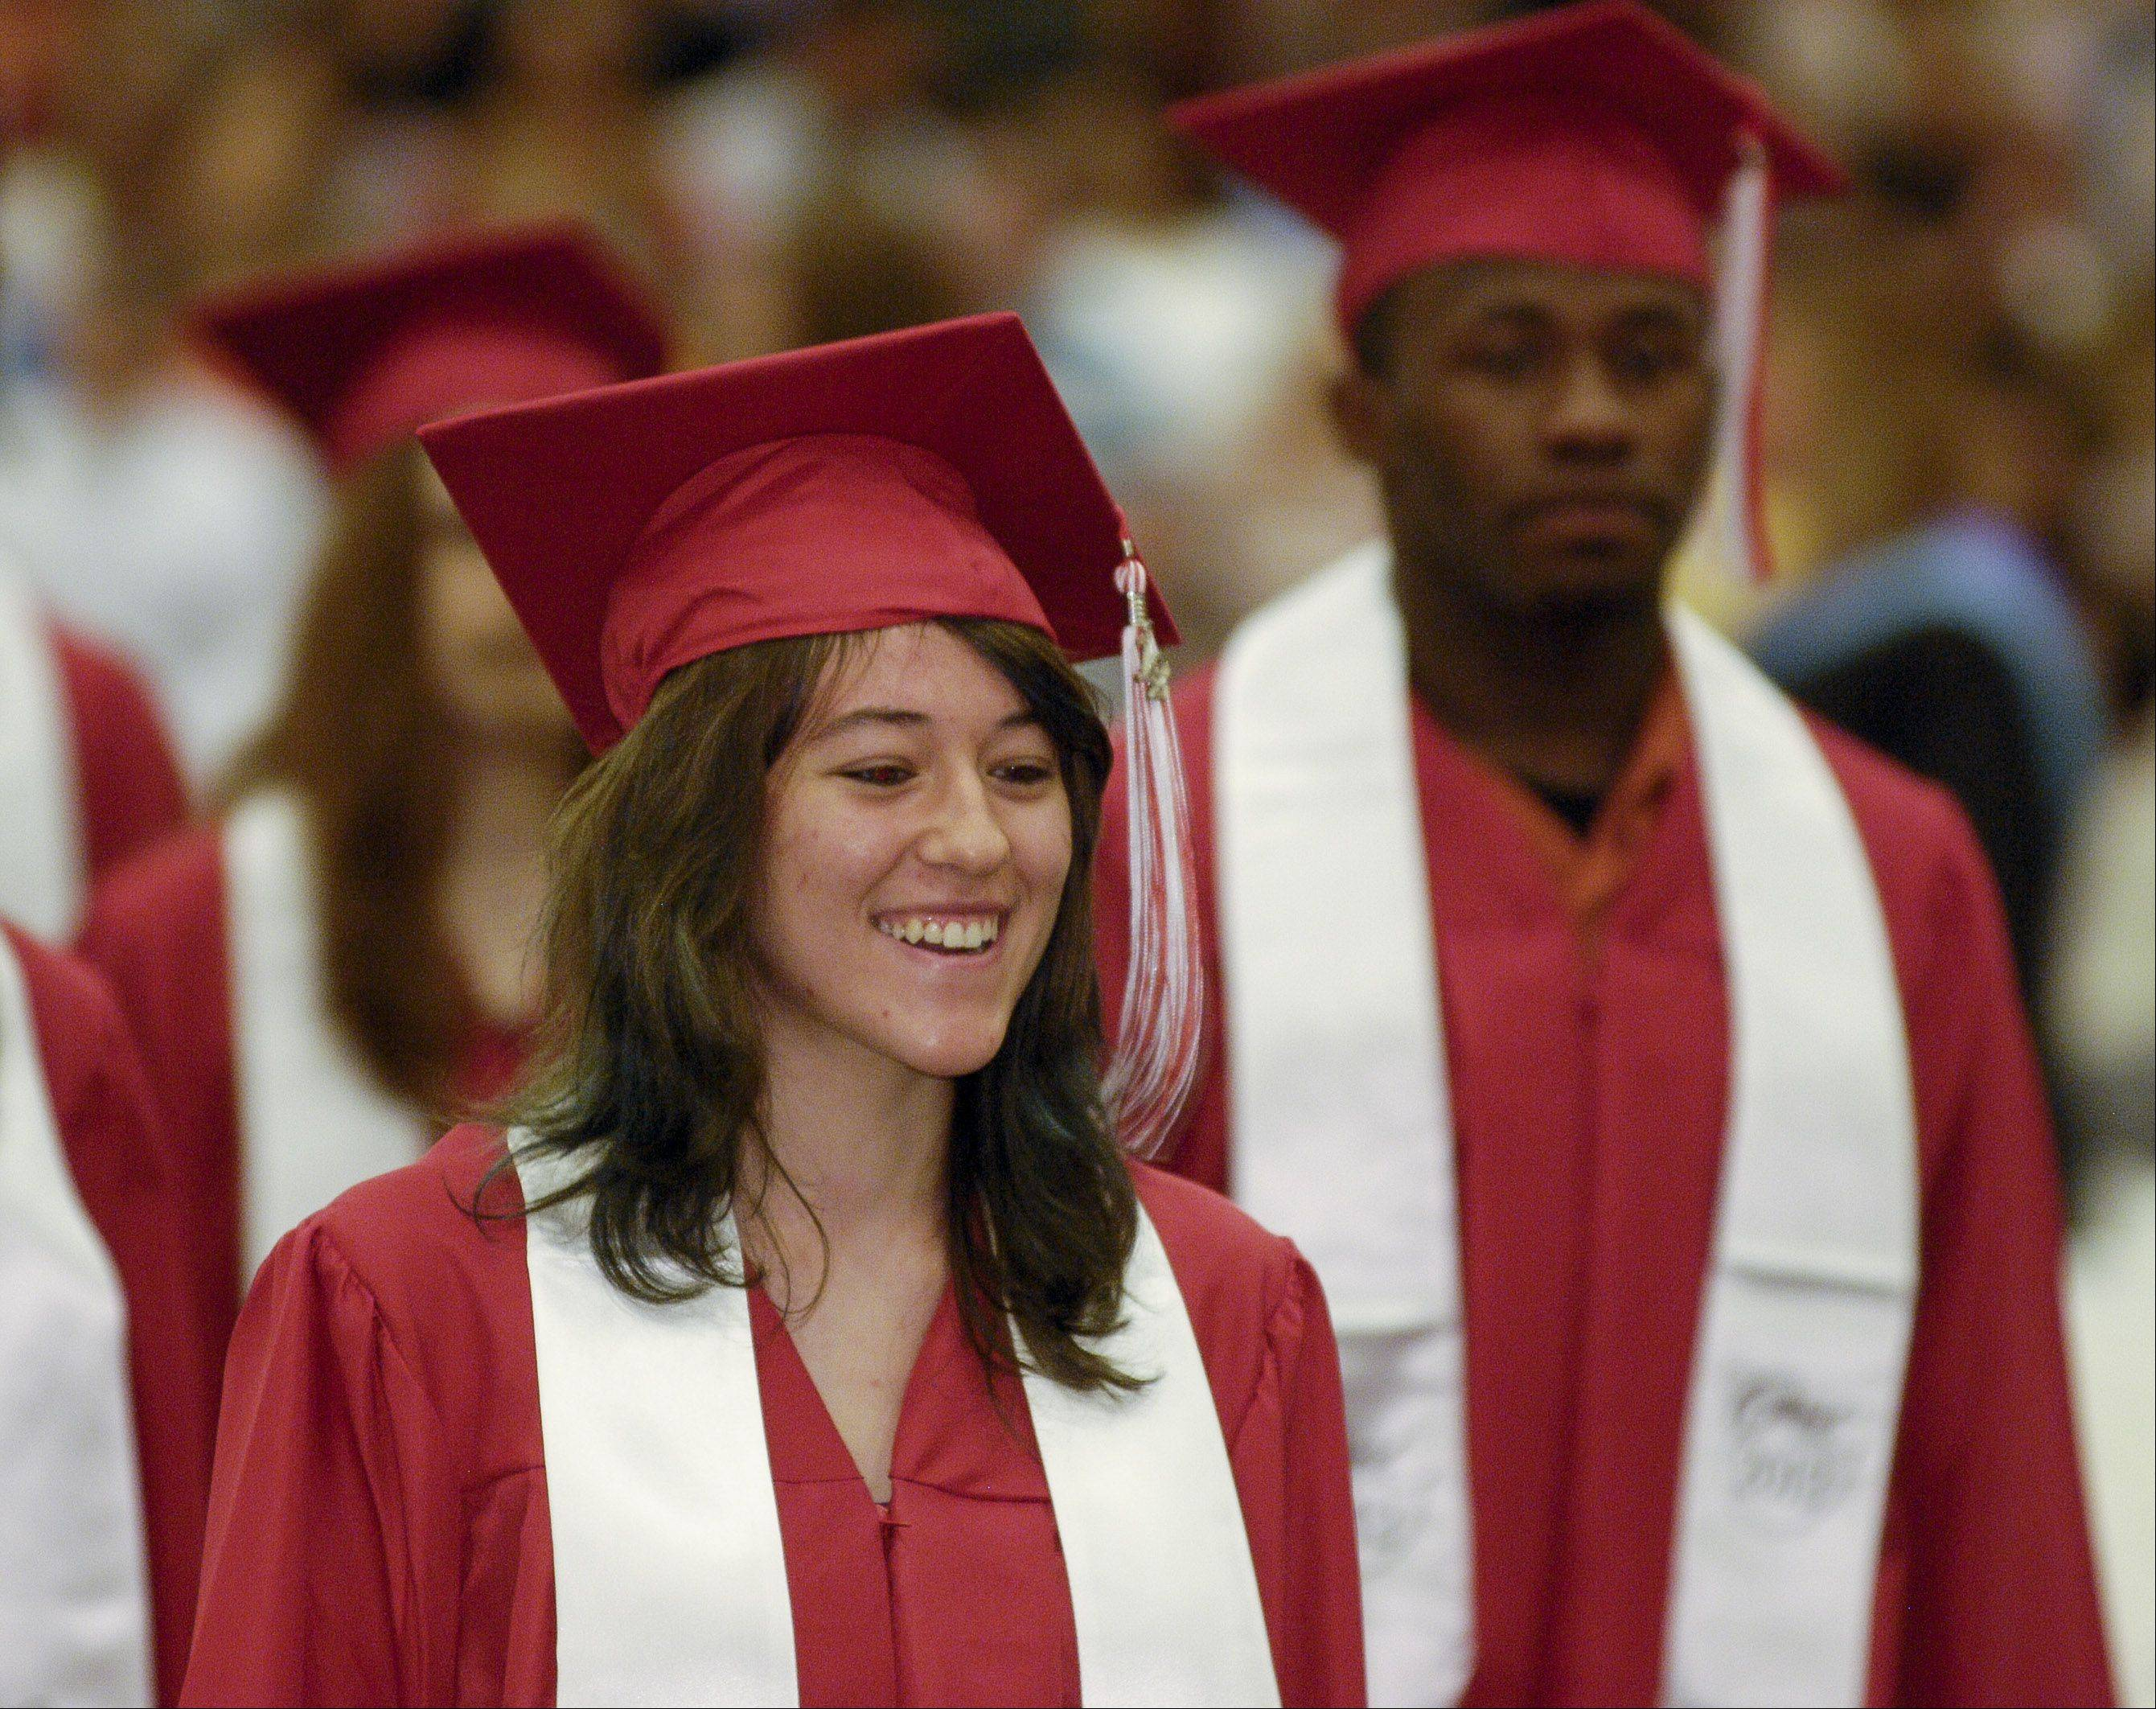 Glenbard East High School held its graduation Sunday June 3 at the College of DuPage in Glen Ellyn.